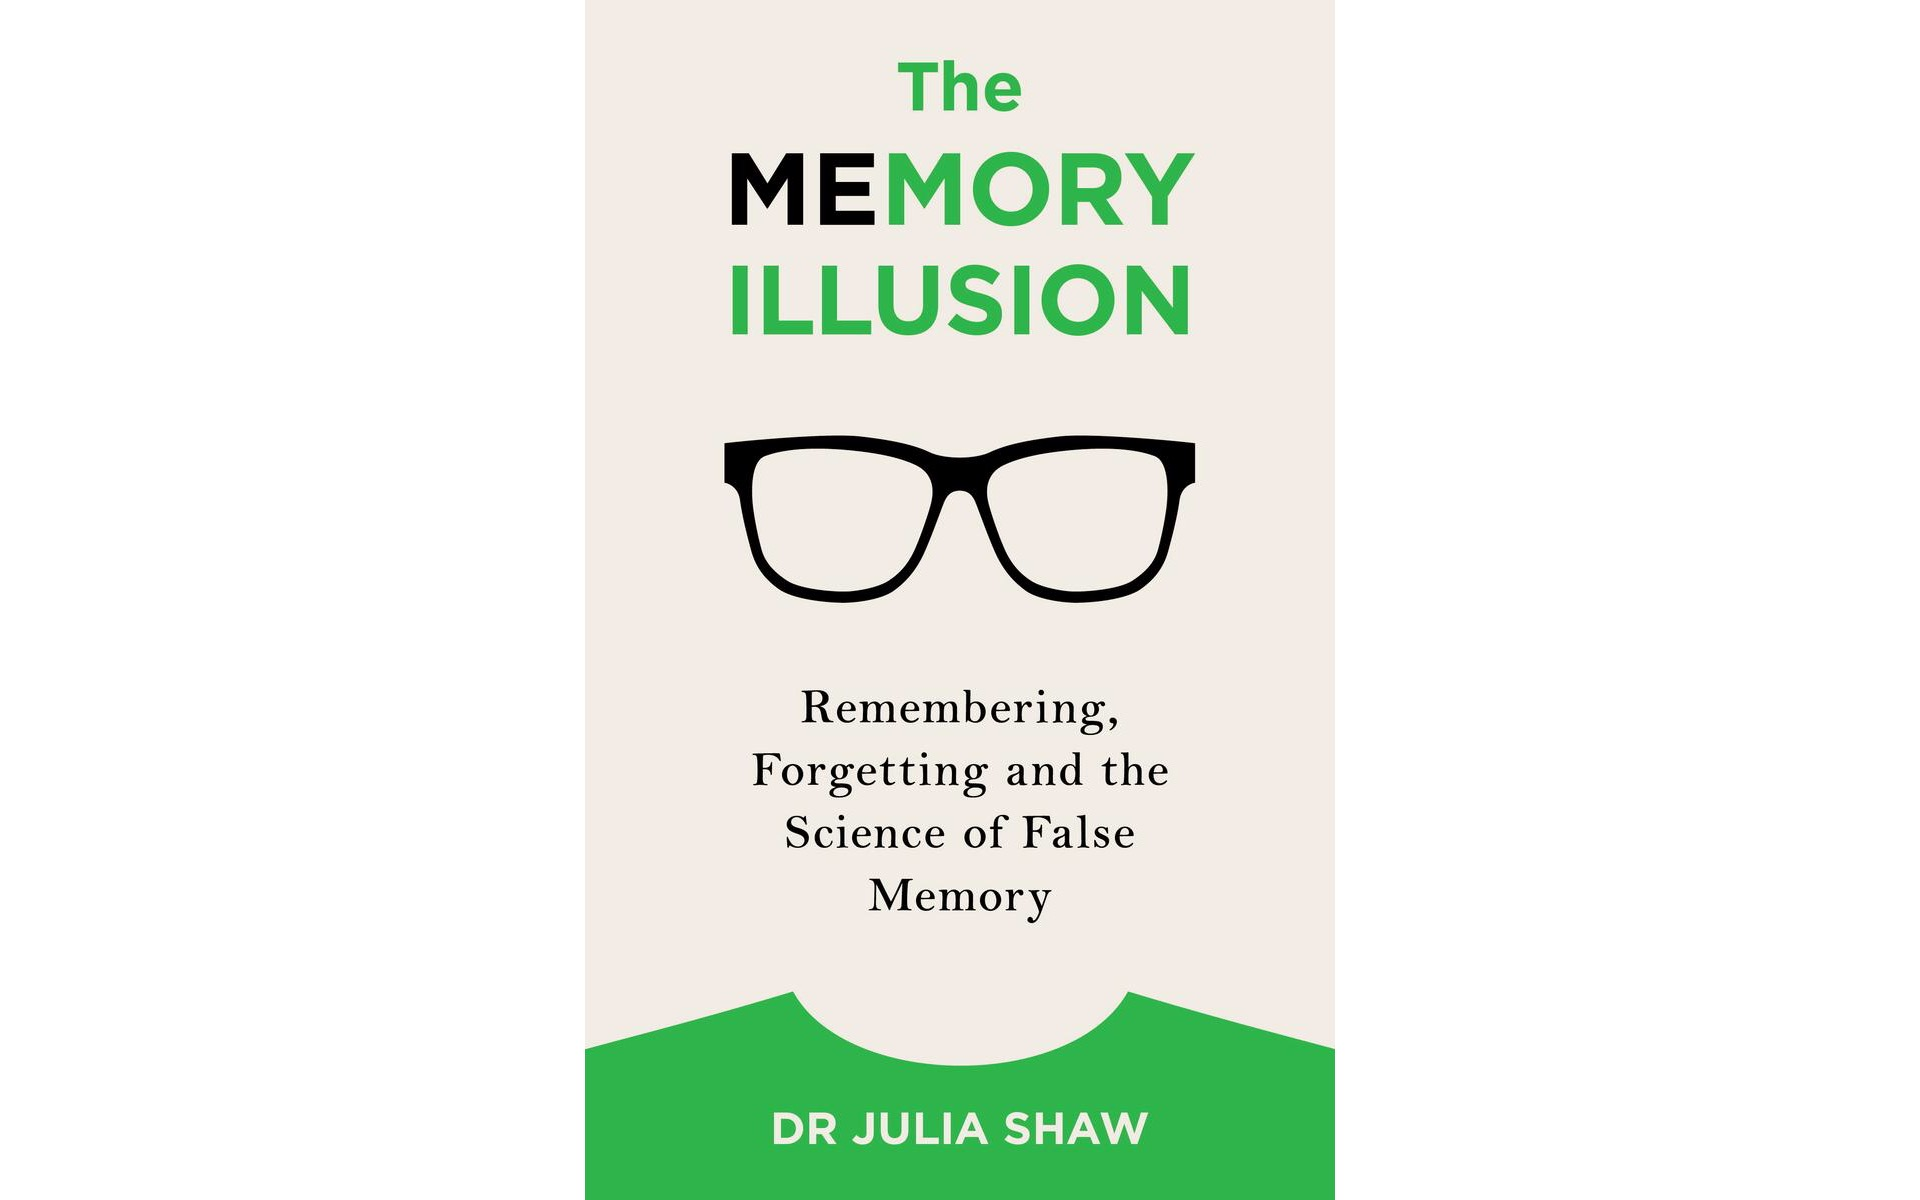 the-memory-illusion-by-dr-julia-shaw